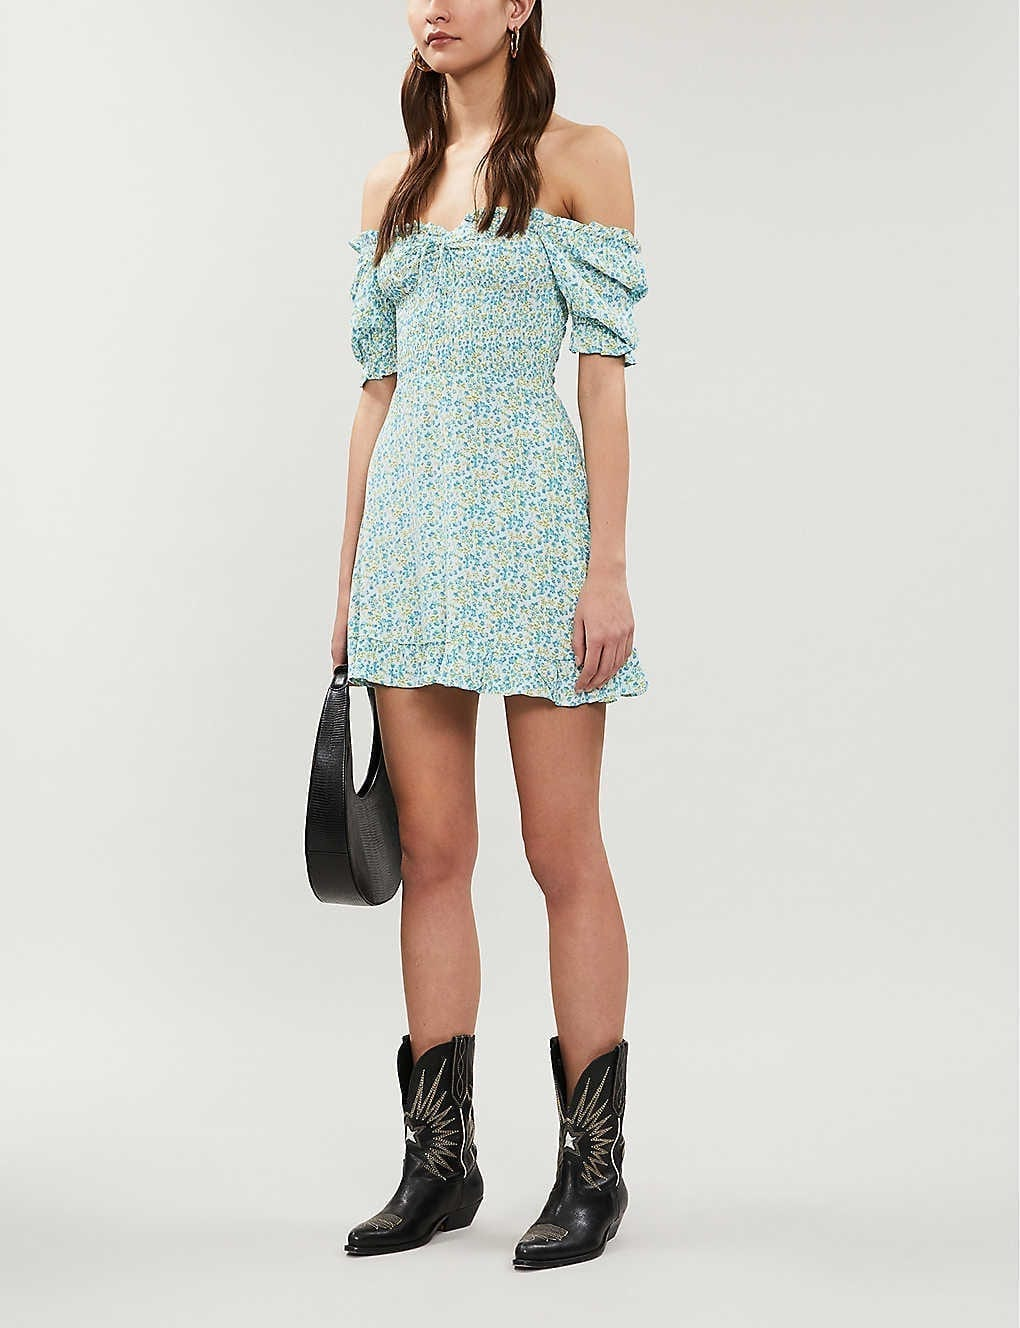 FAITHFULL THE BRAND Donna Crepe Mini Dress